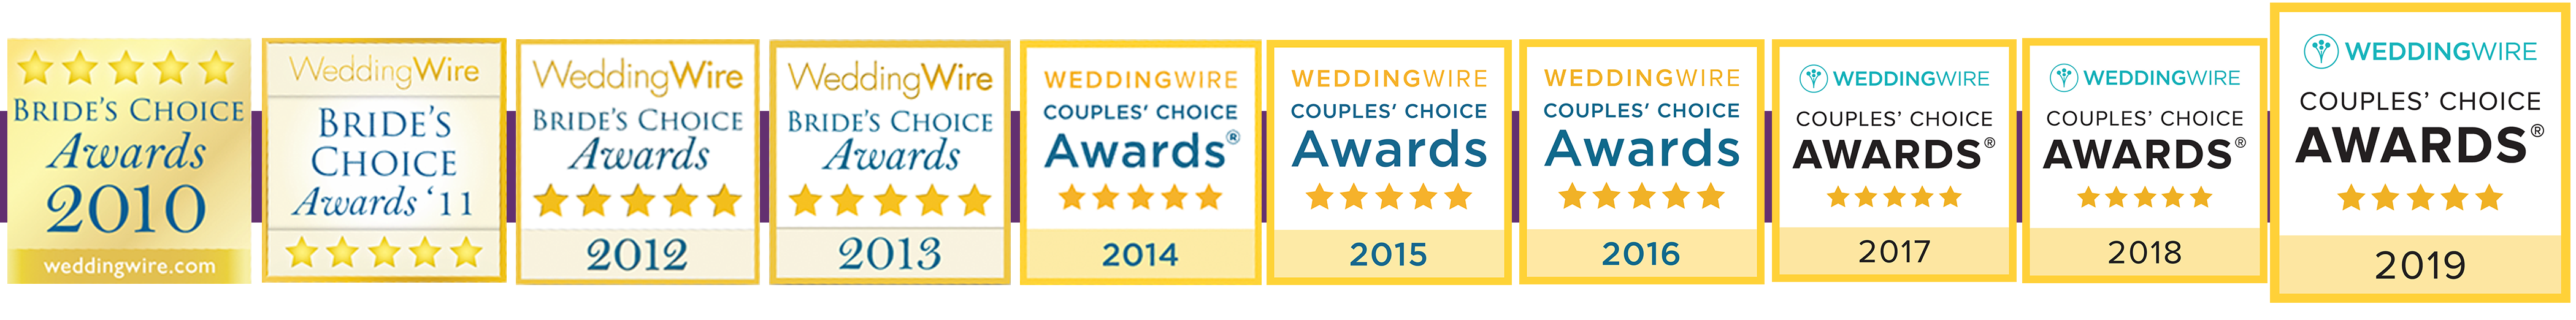 Wedding Wire Couples Choice Award Chicago